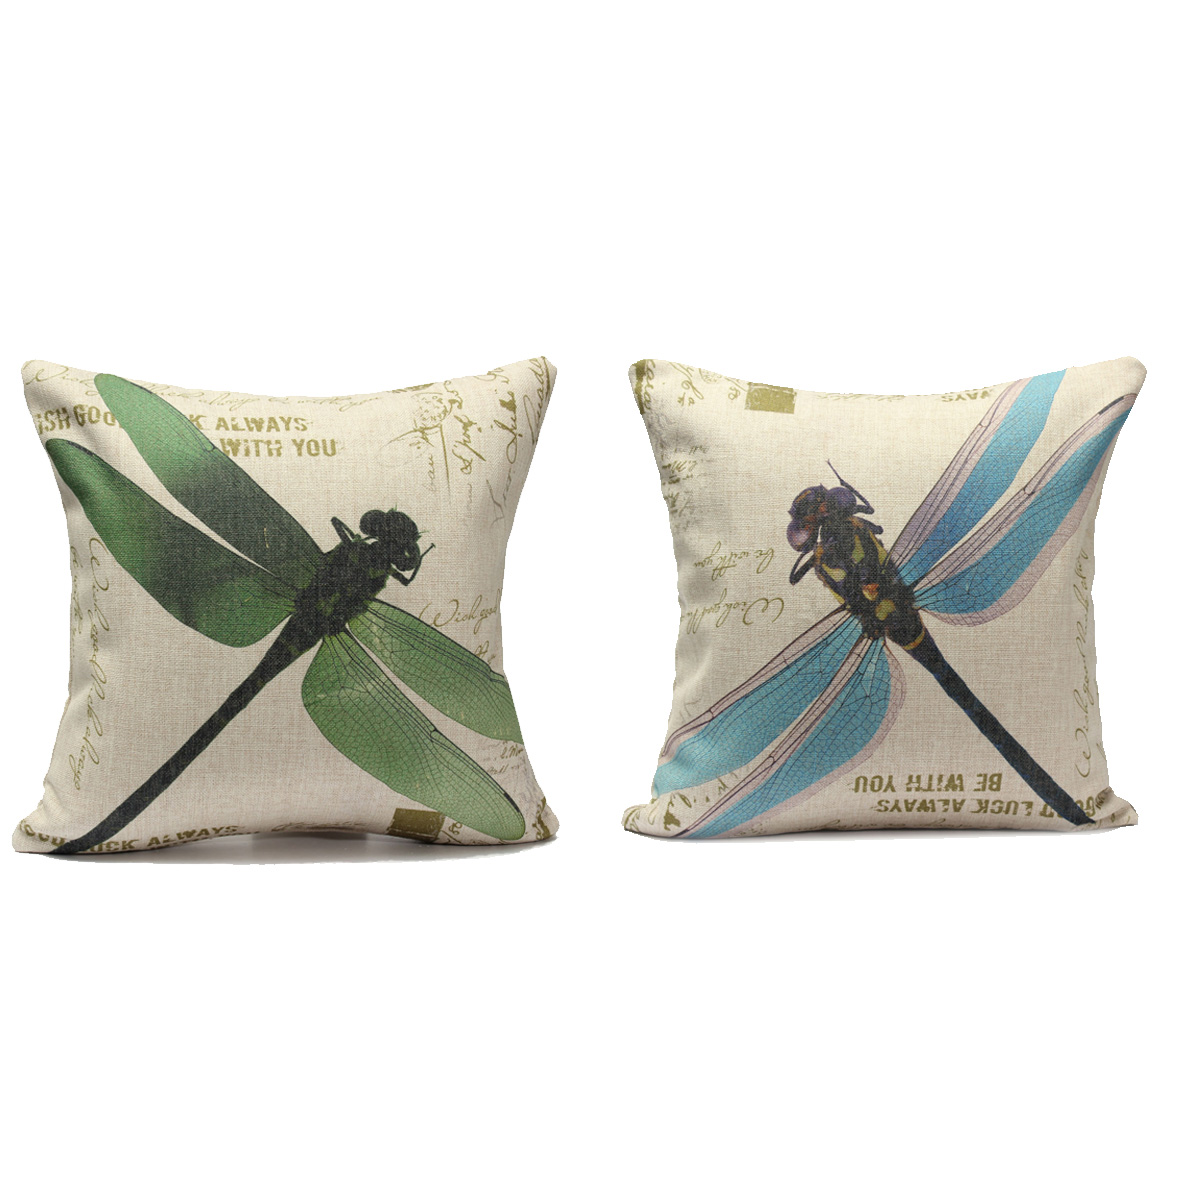 Throw Pillow With Dragonfly : Dragonfly Throw Cushion Cover Linen Cotton Sofa Car Waist Pillow Case Decoration eBay